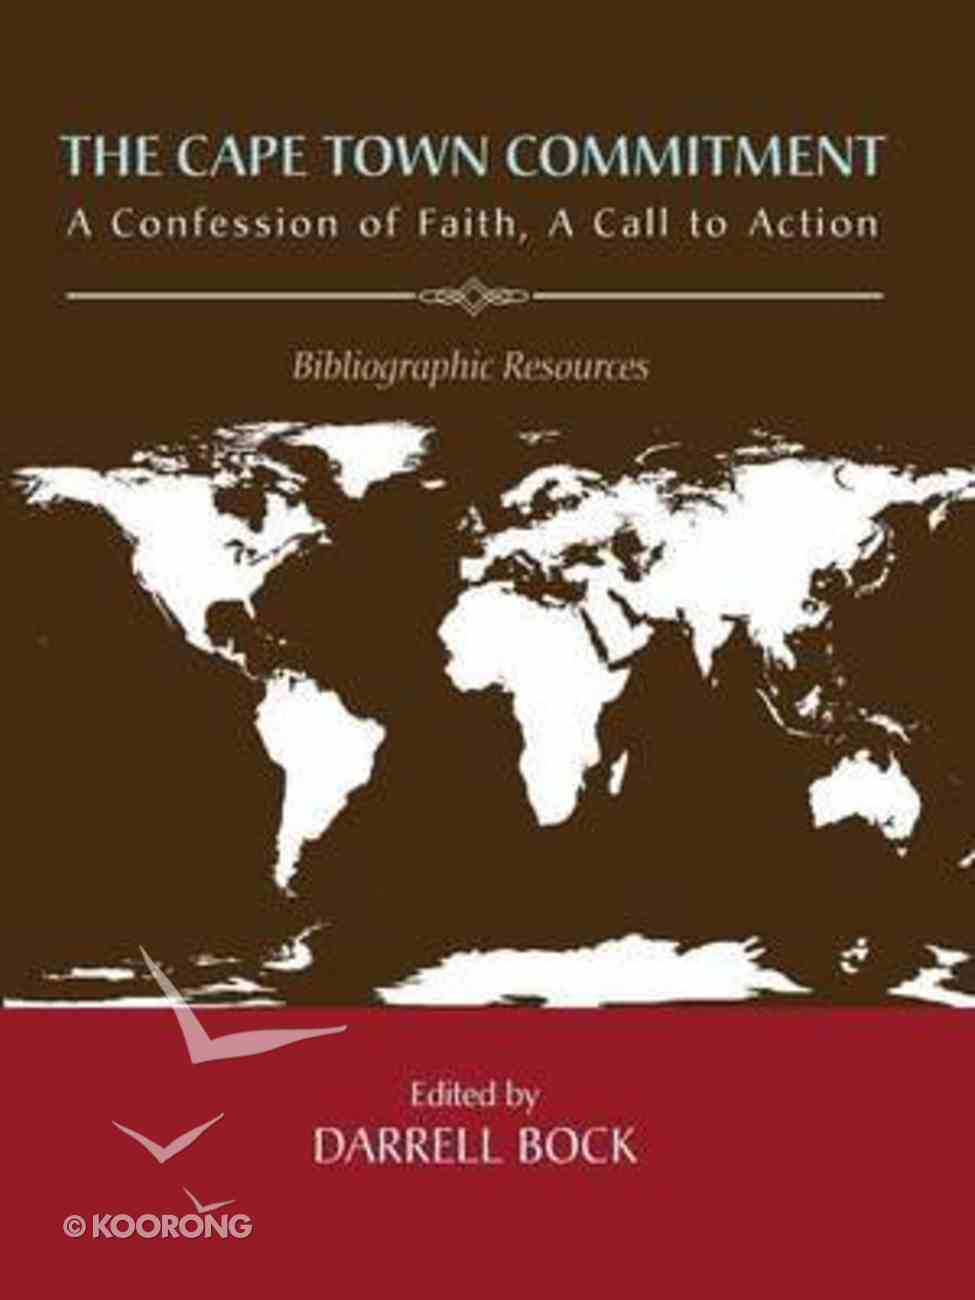 The Cape Town Commitment: A Confession of Faith, a Call to Action Paperback